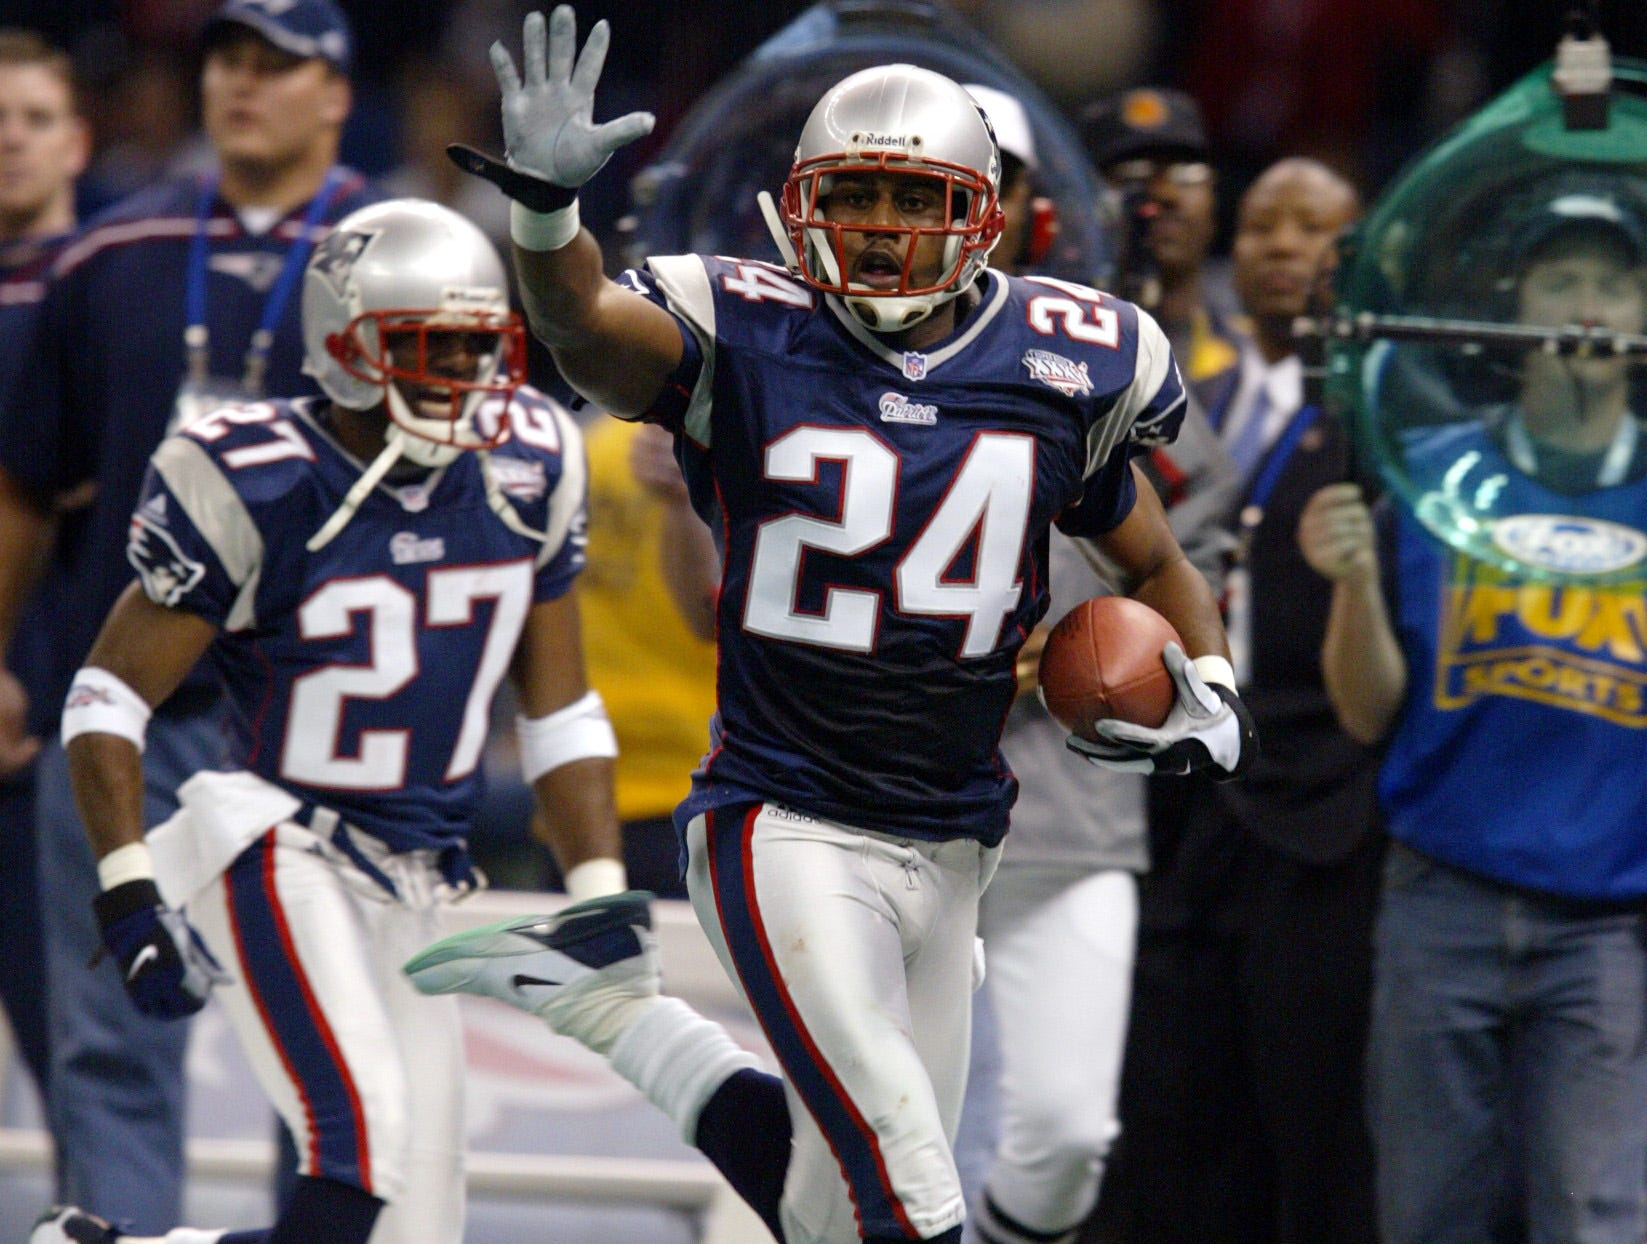 Ty Law was a five-time Pro Bowl selection and two-time all-pro who won three Super Bowls with the Patriots. He retired with 53 career interceptions.